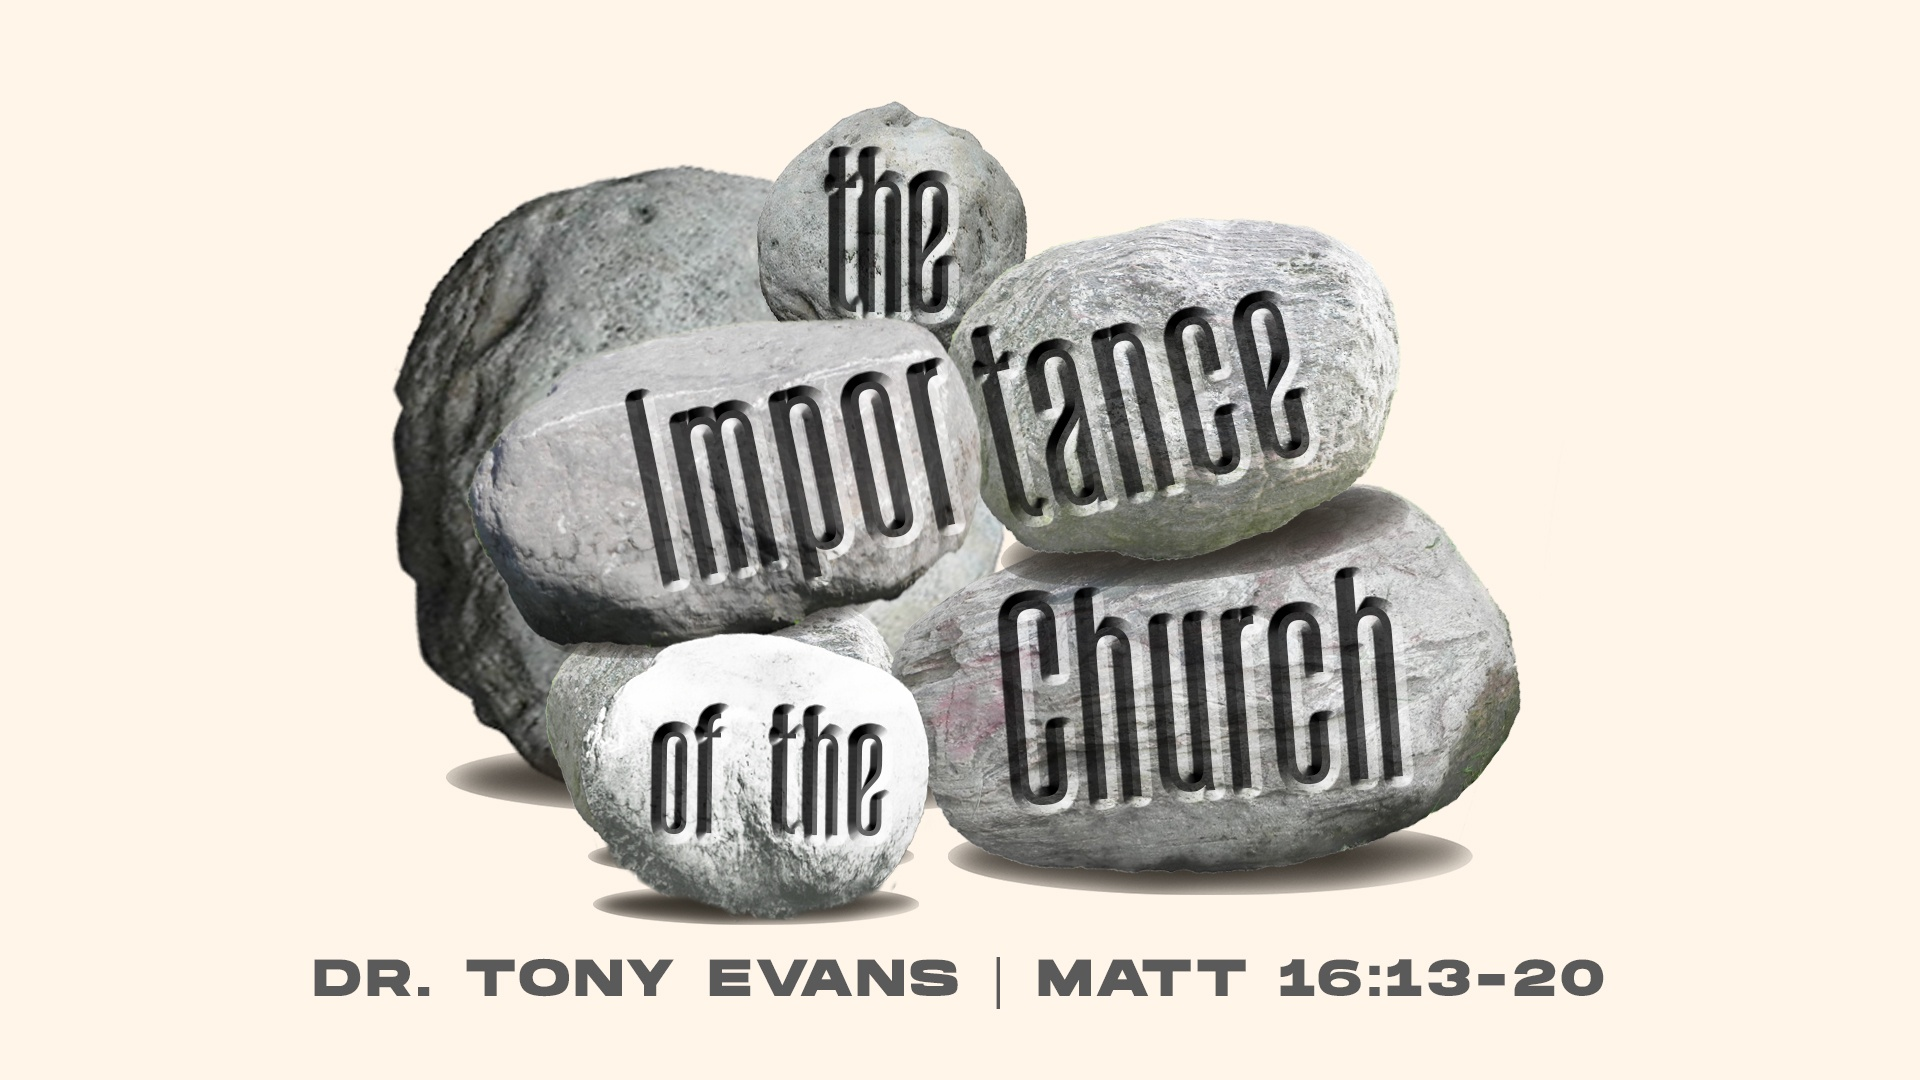 The Importance of the Church (Matthew 16:13-20) by Dr. Tony Evans